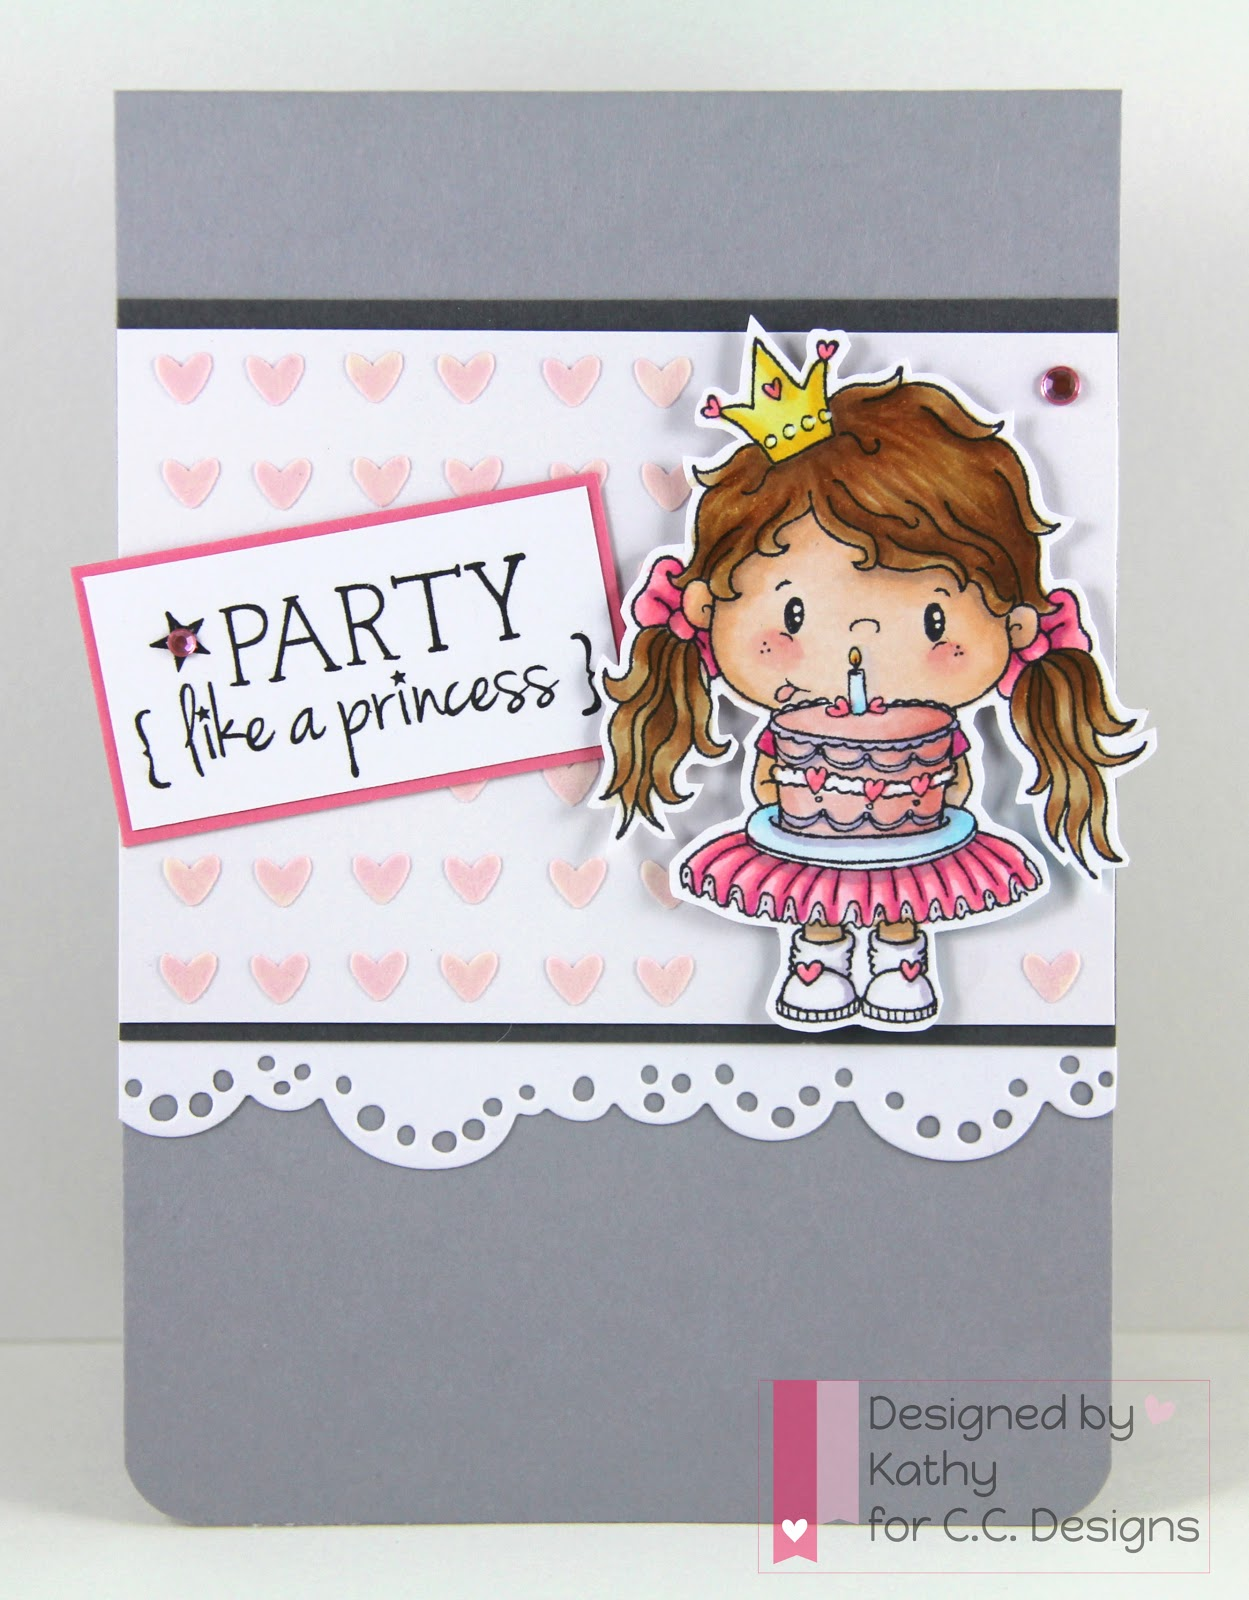 cc designs, pollycraft, princess